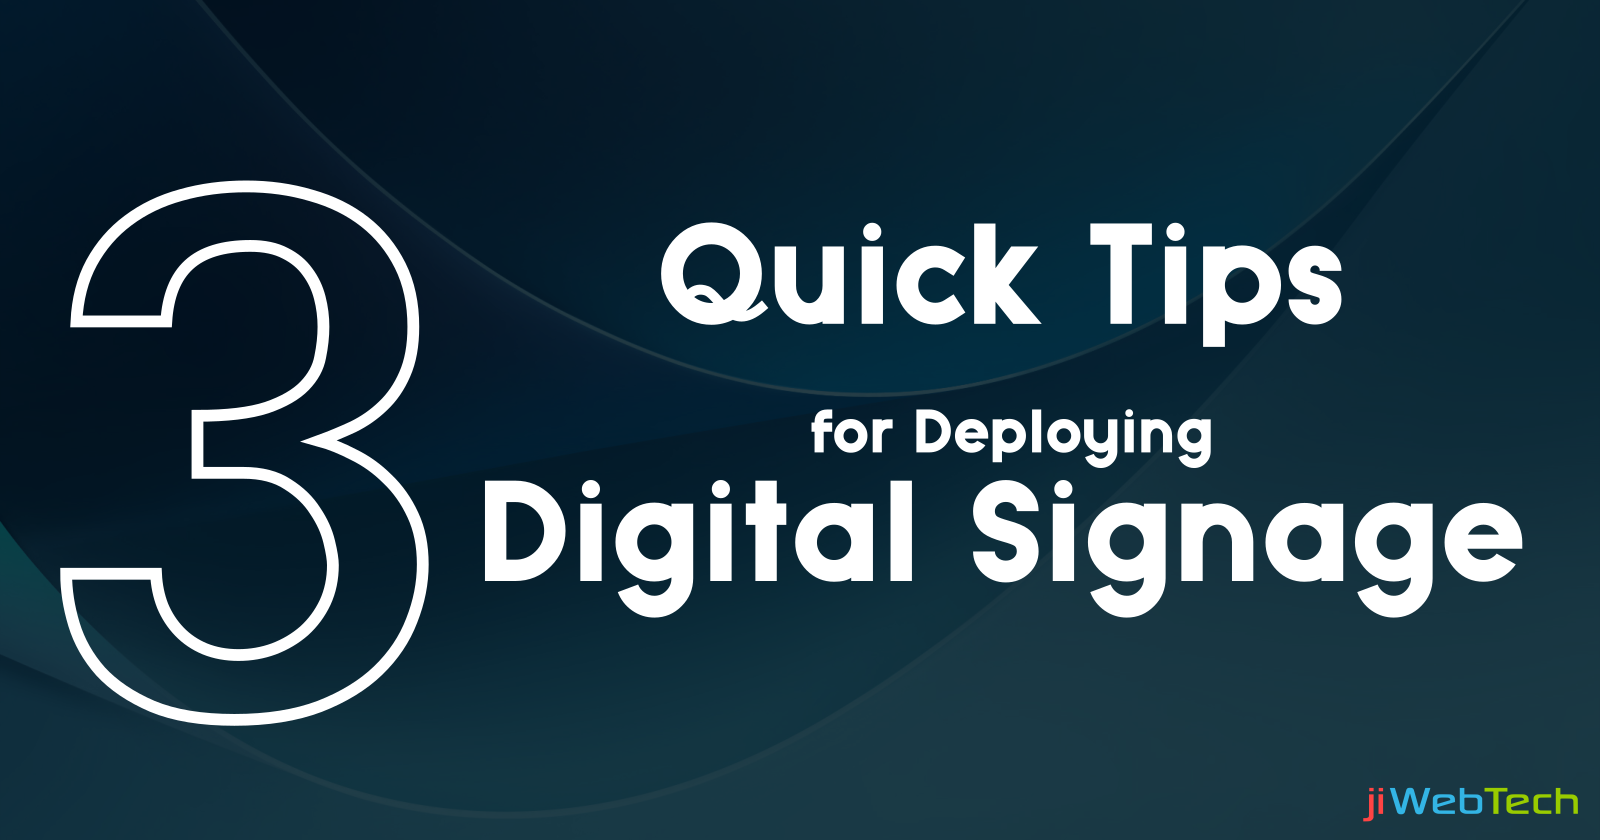 Rules to Keep in Mind Before Deploying a Digital Signage